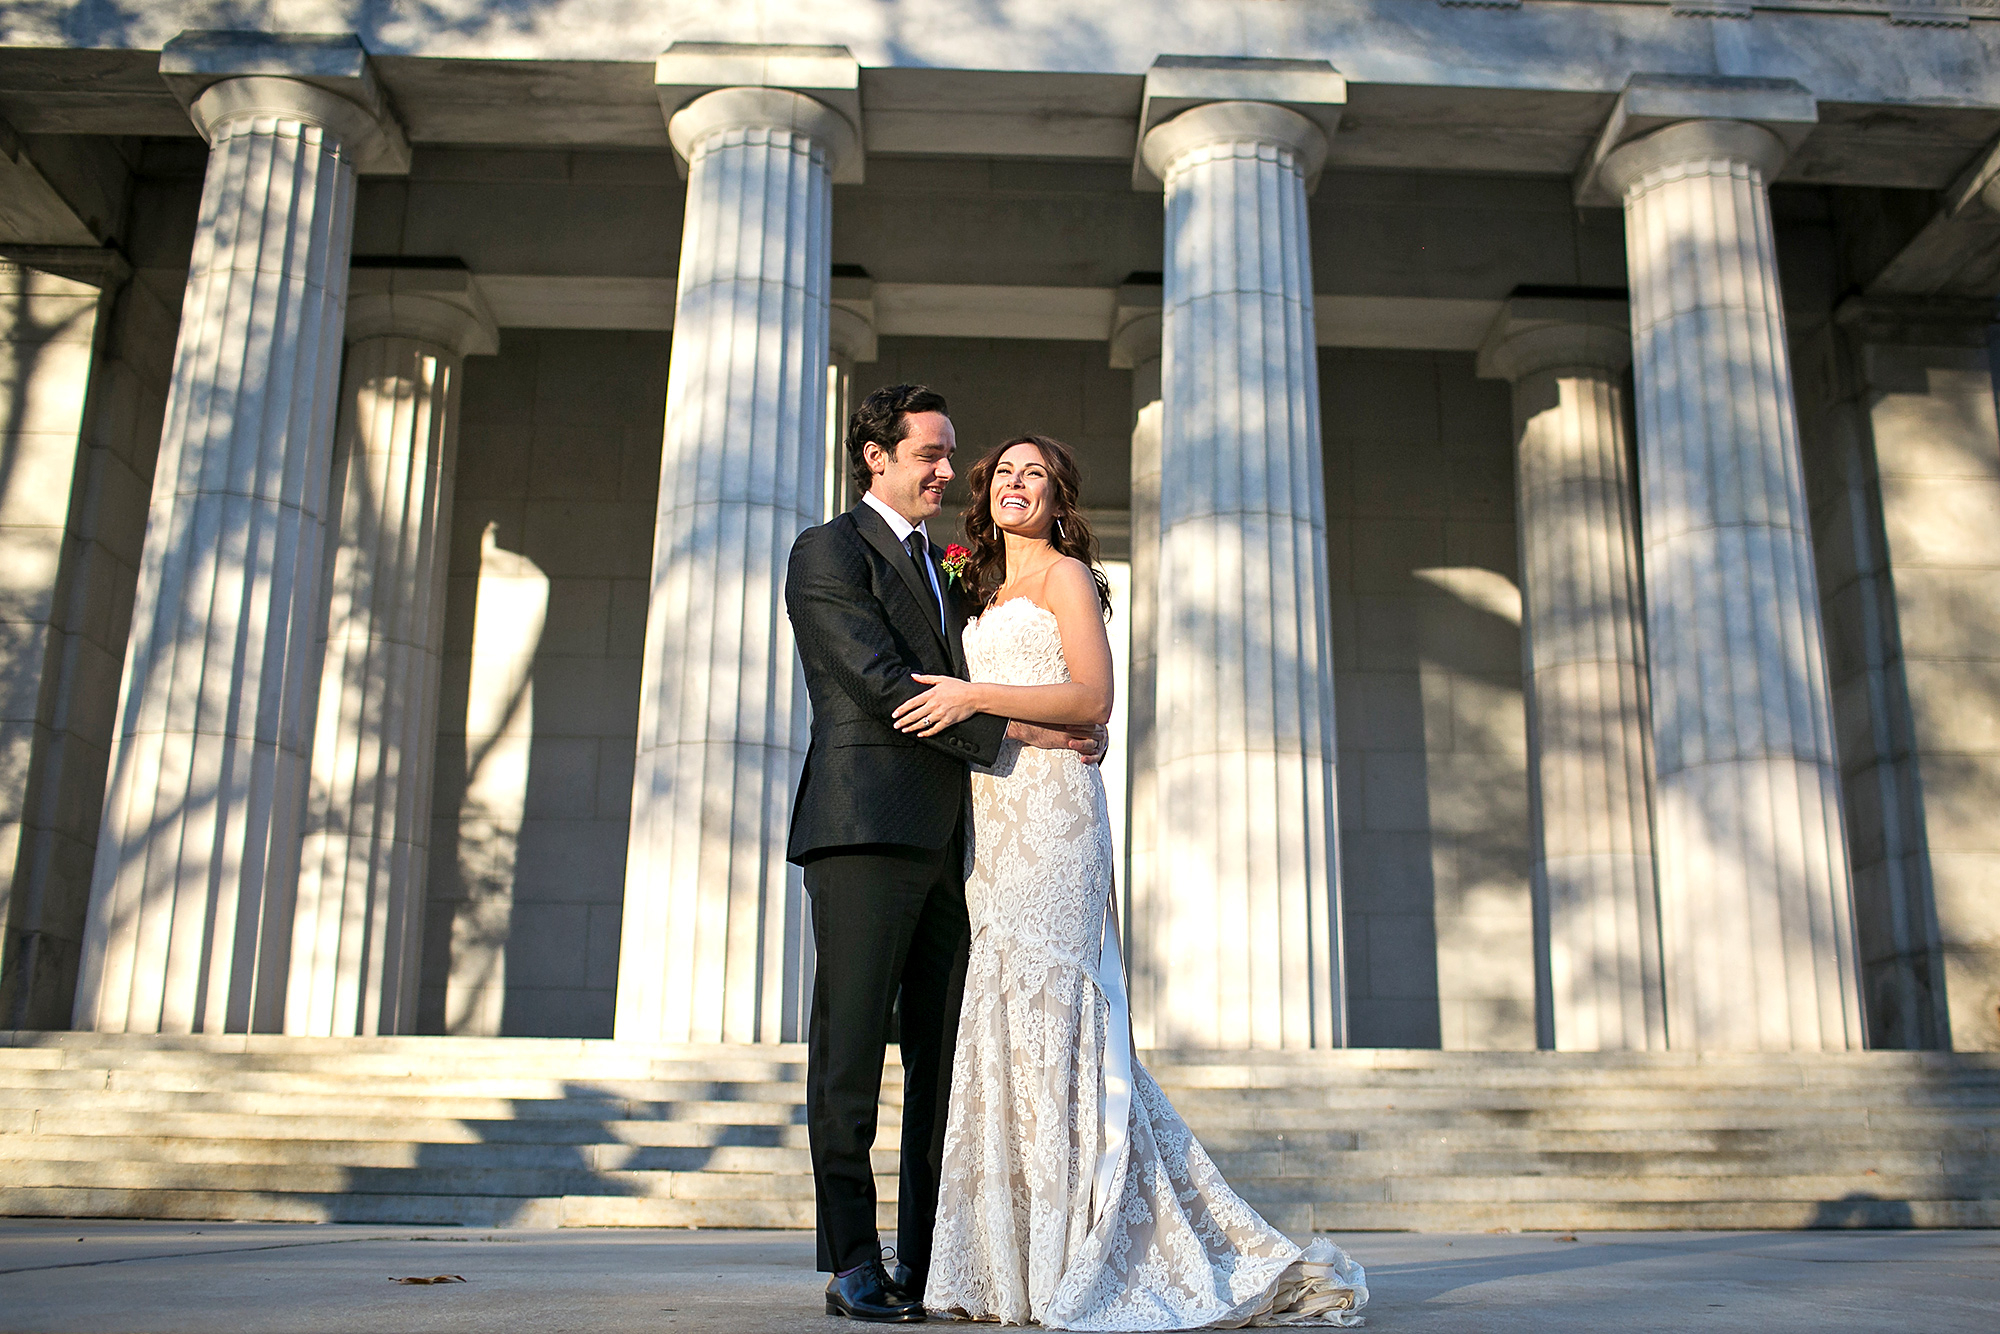 Laura Benanti Stuns on Her Wedding Day in a Lace Dress